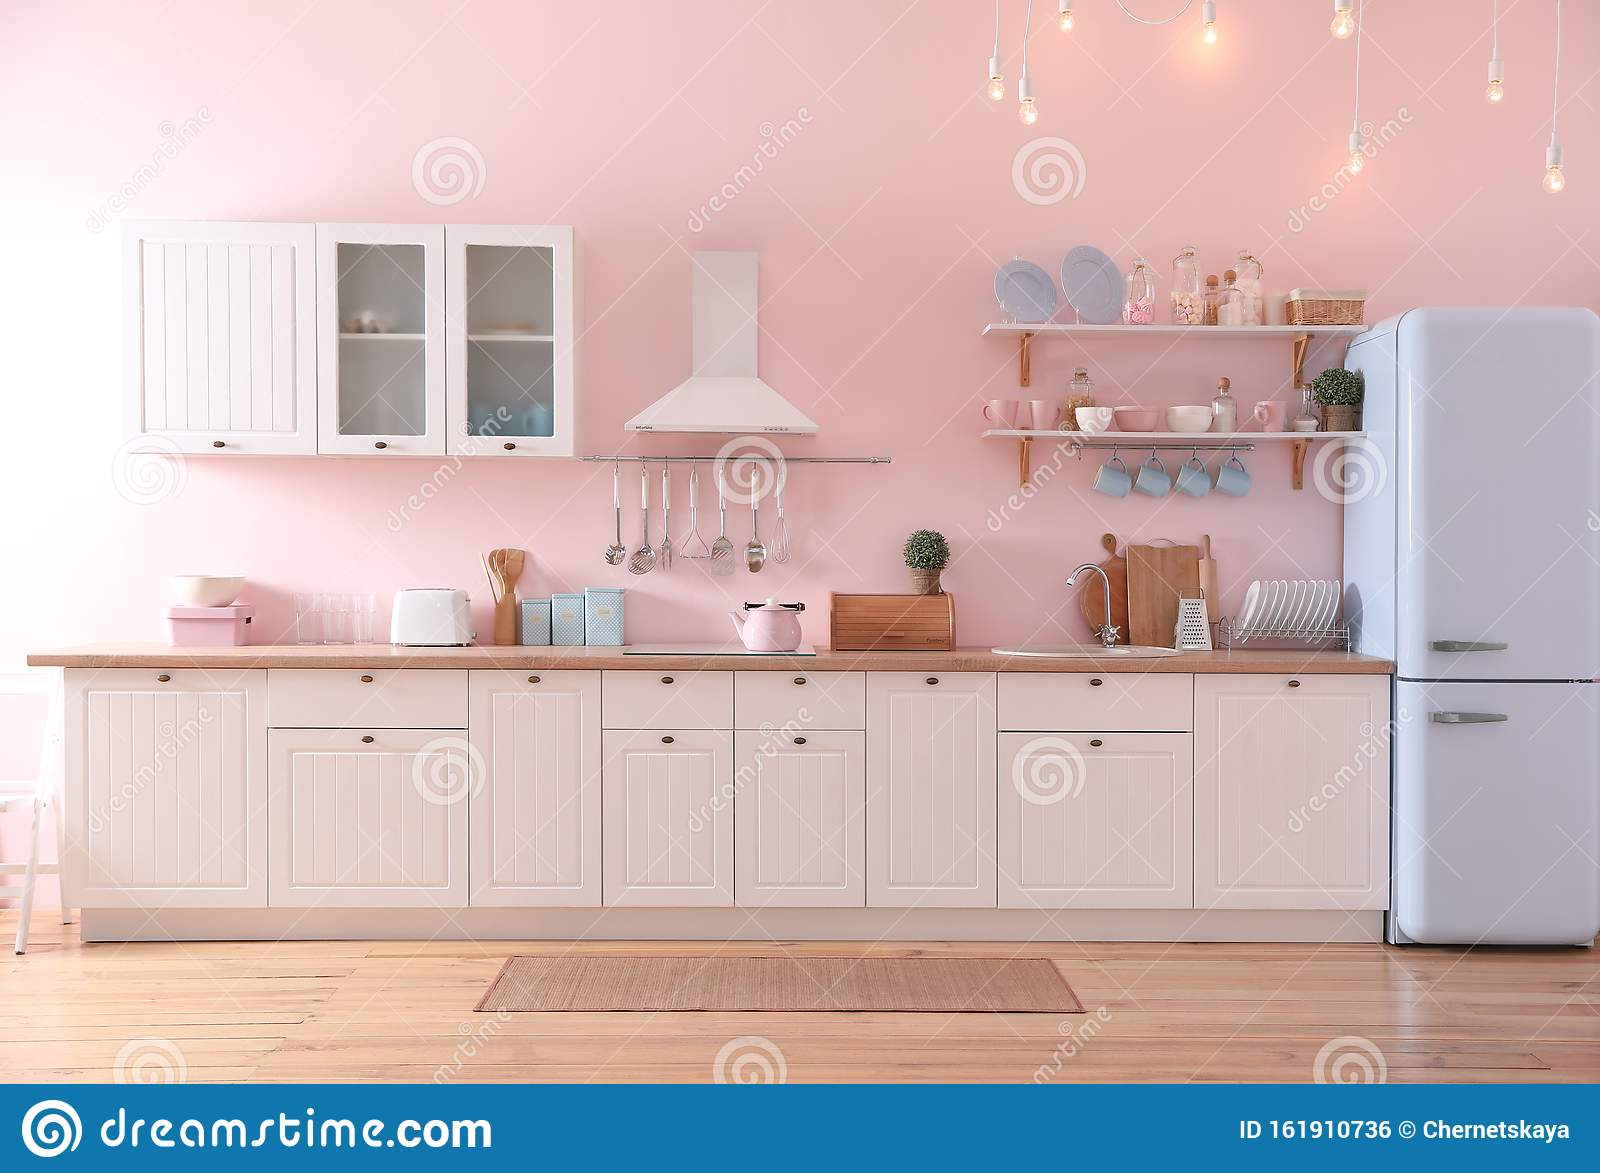 Stylish Pink Kitchen Interior With Furniture And Fridge Stock Photo Image Of Idea Clean 161910736